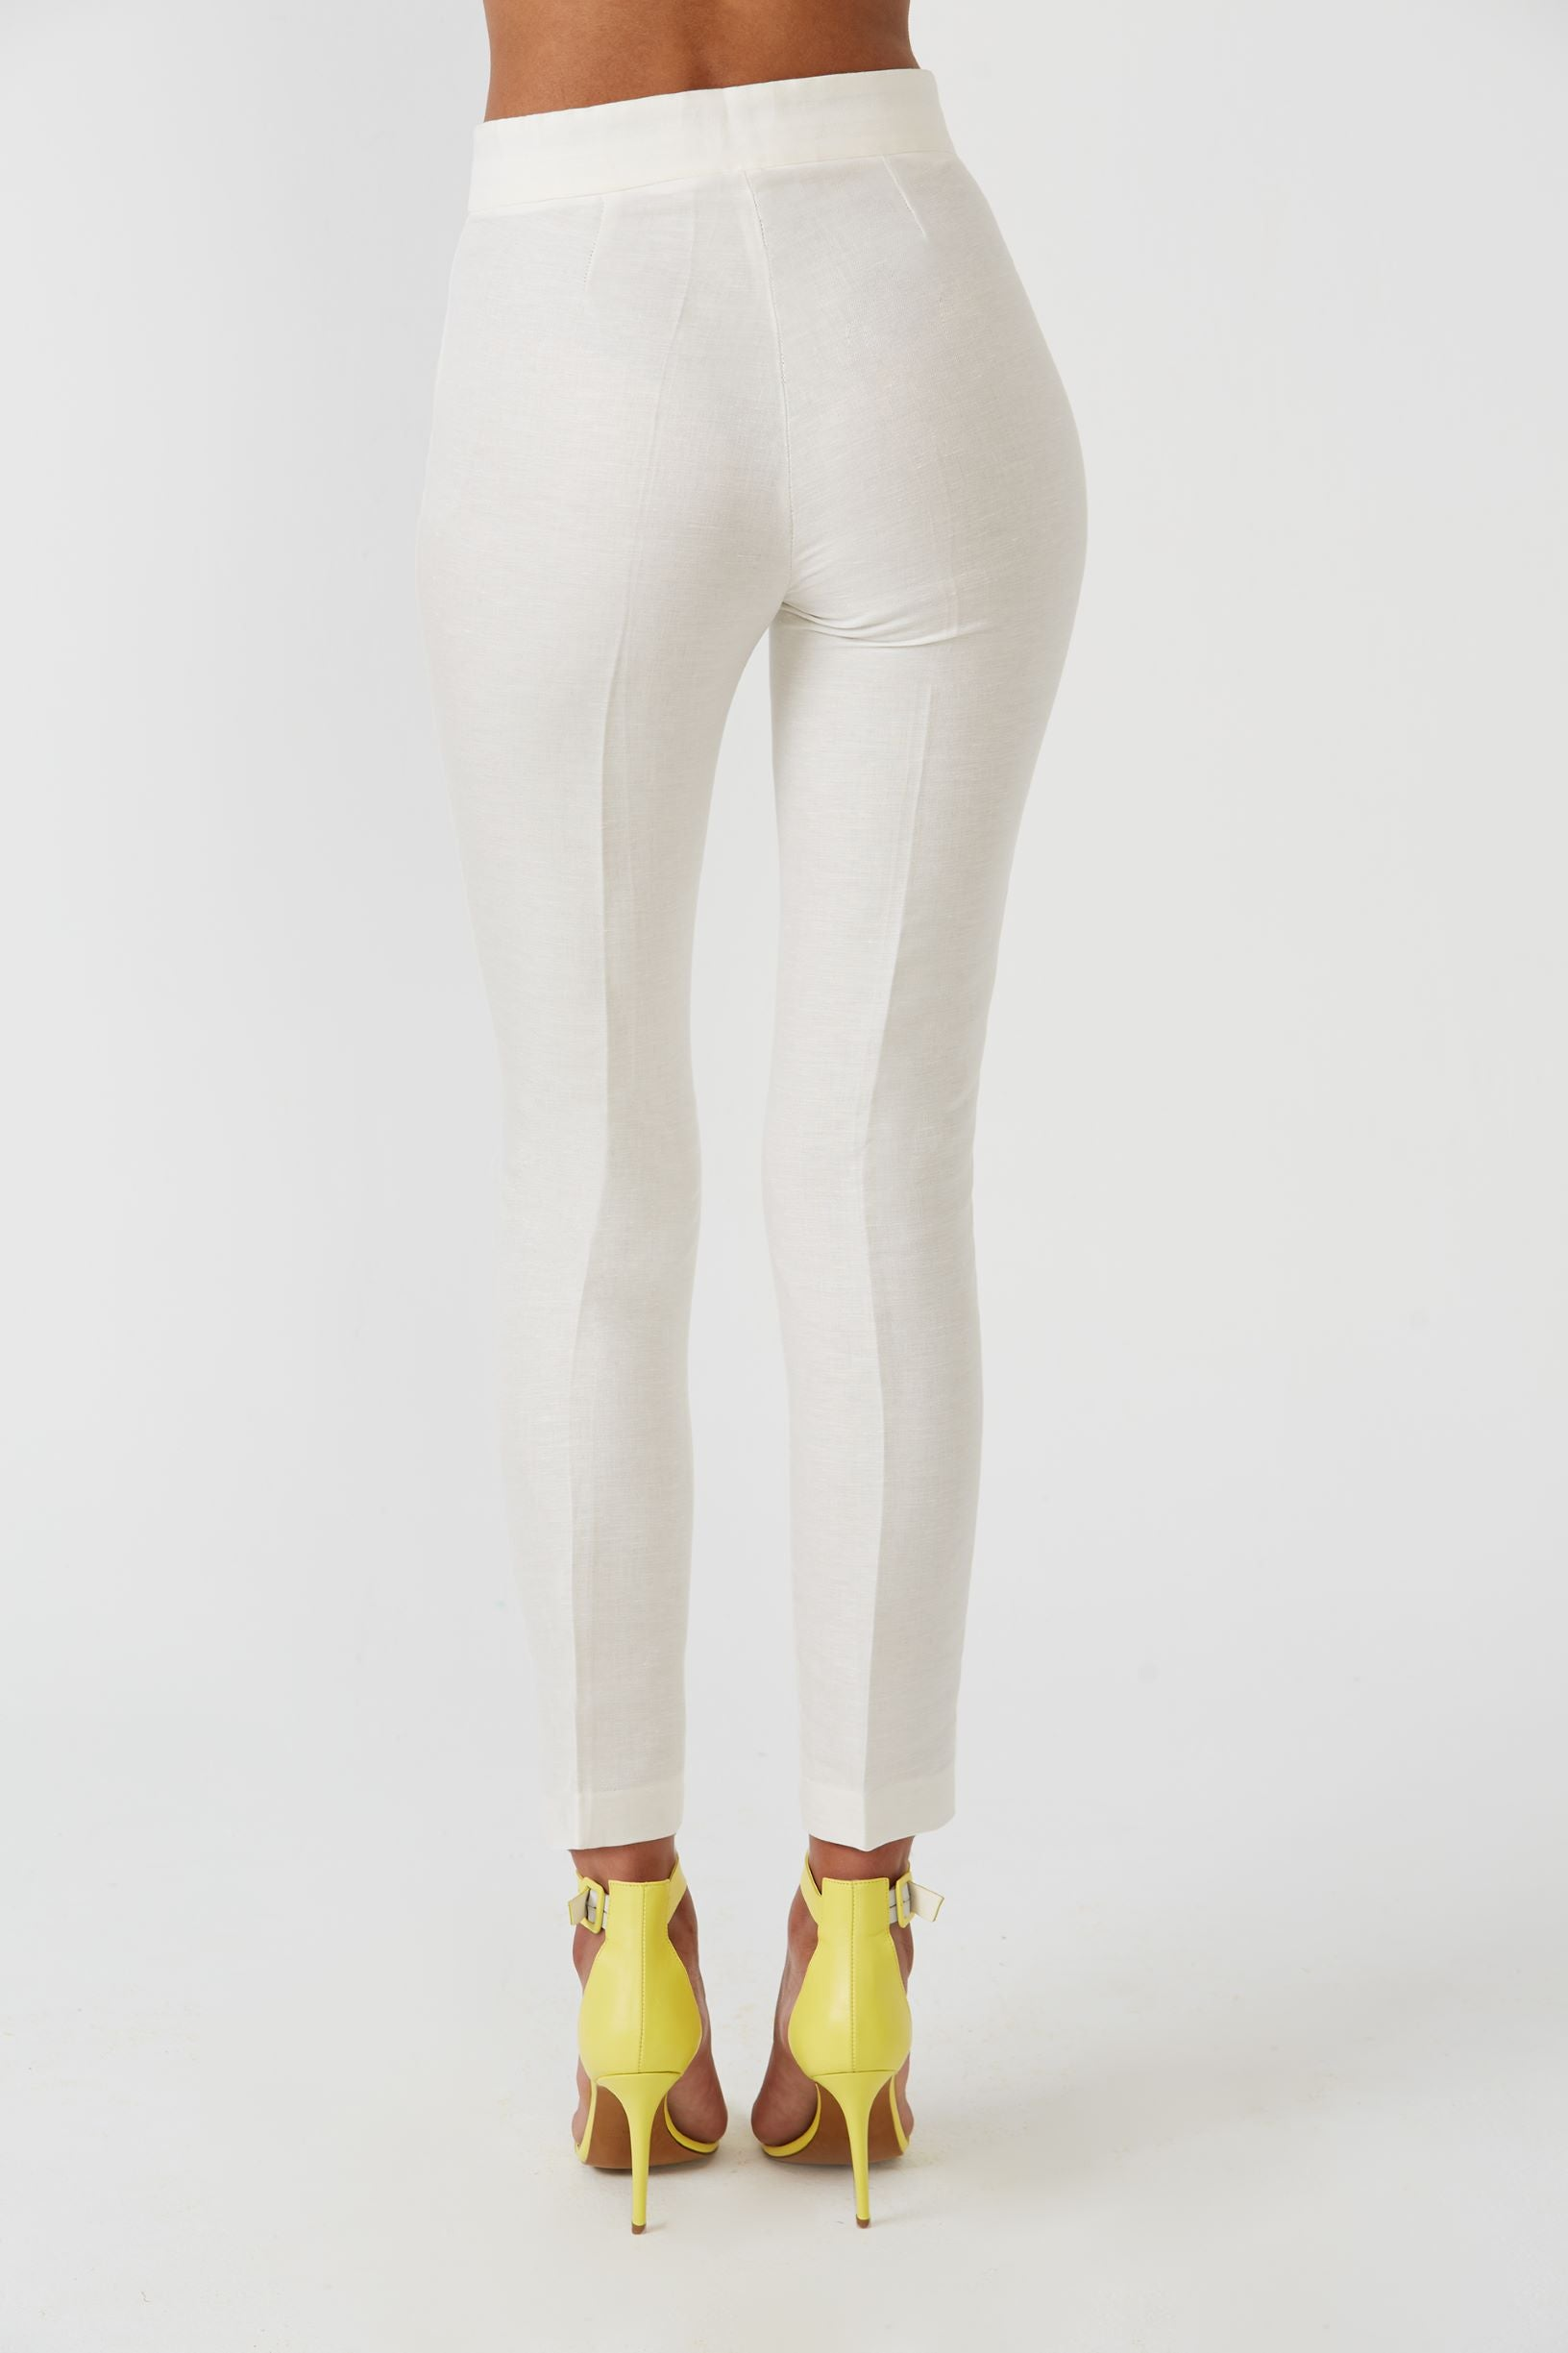 Jer white trousers - Etxart & Panno USA